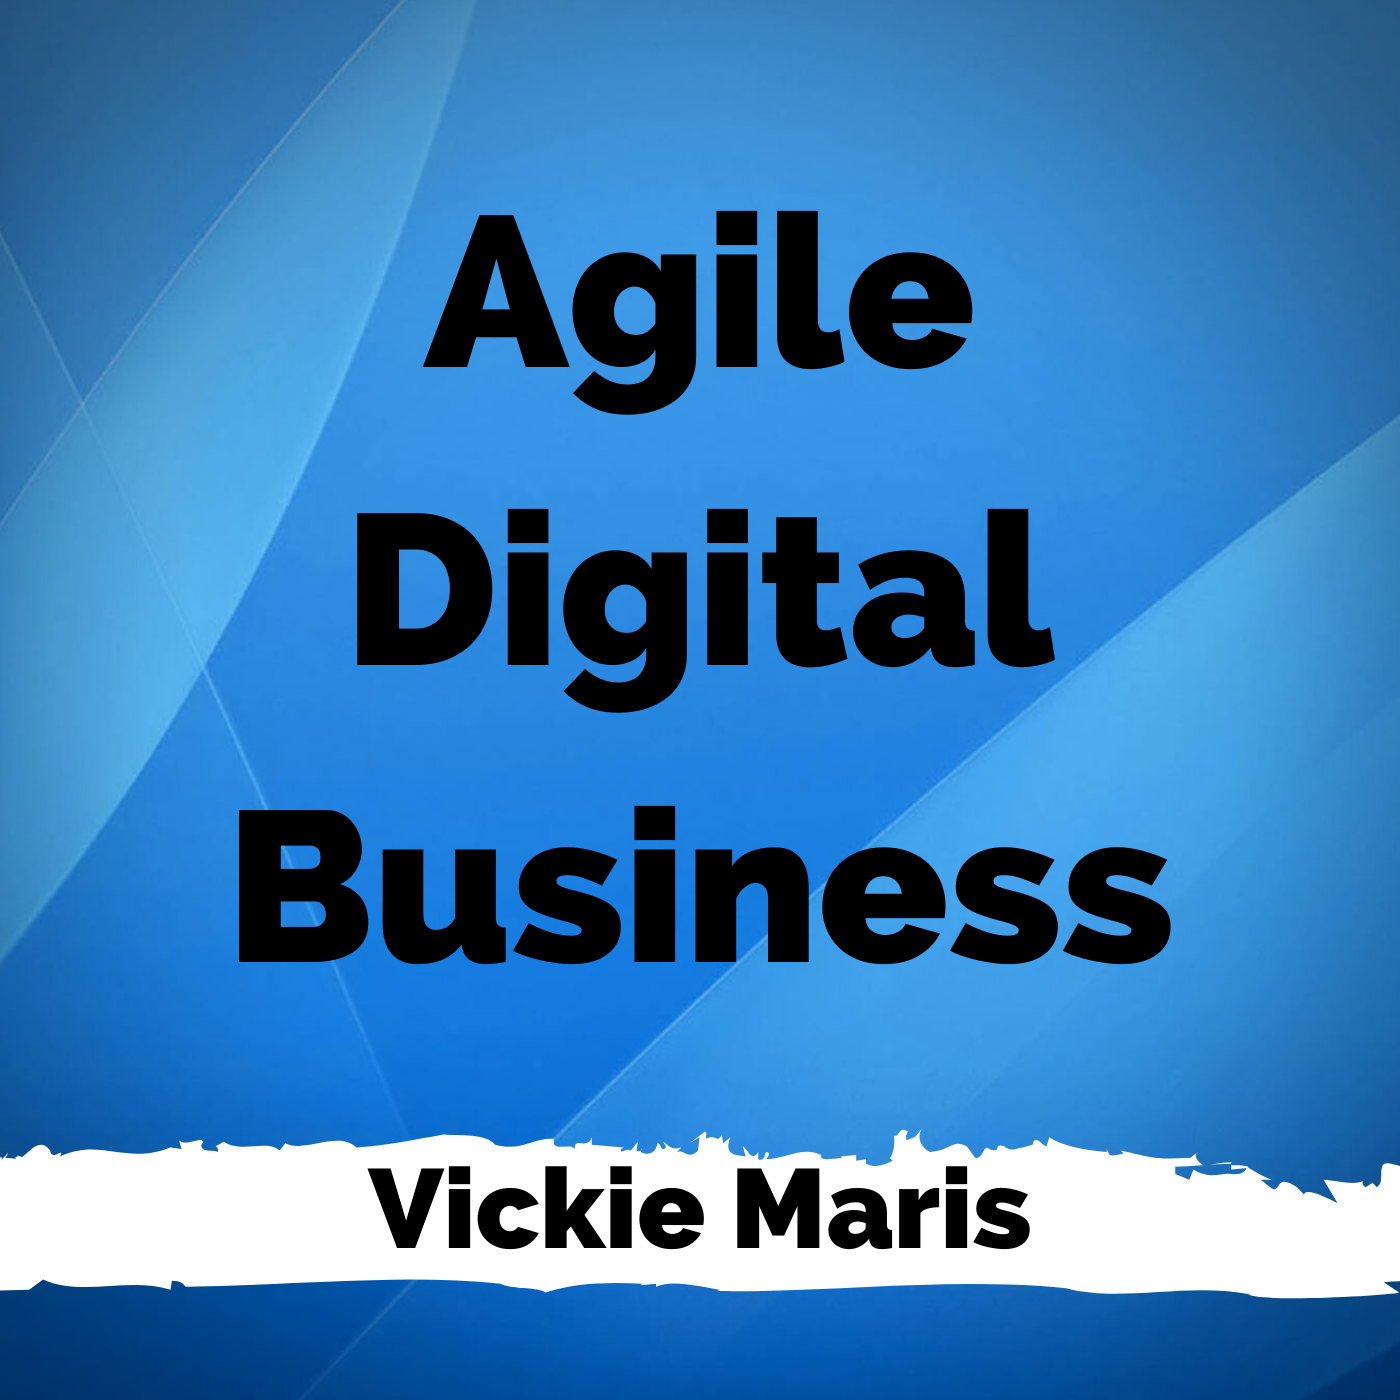 Agile Digital Business